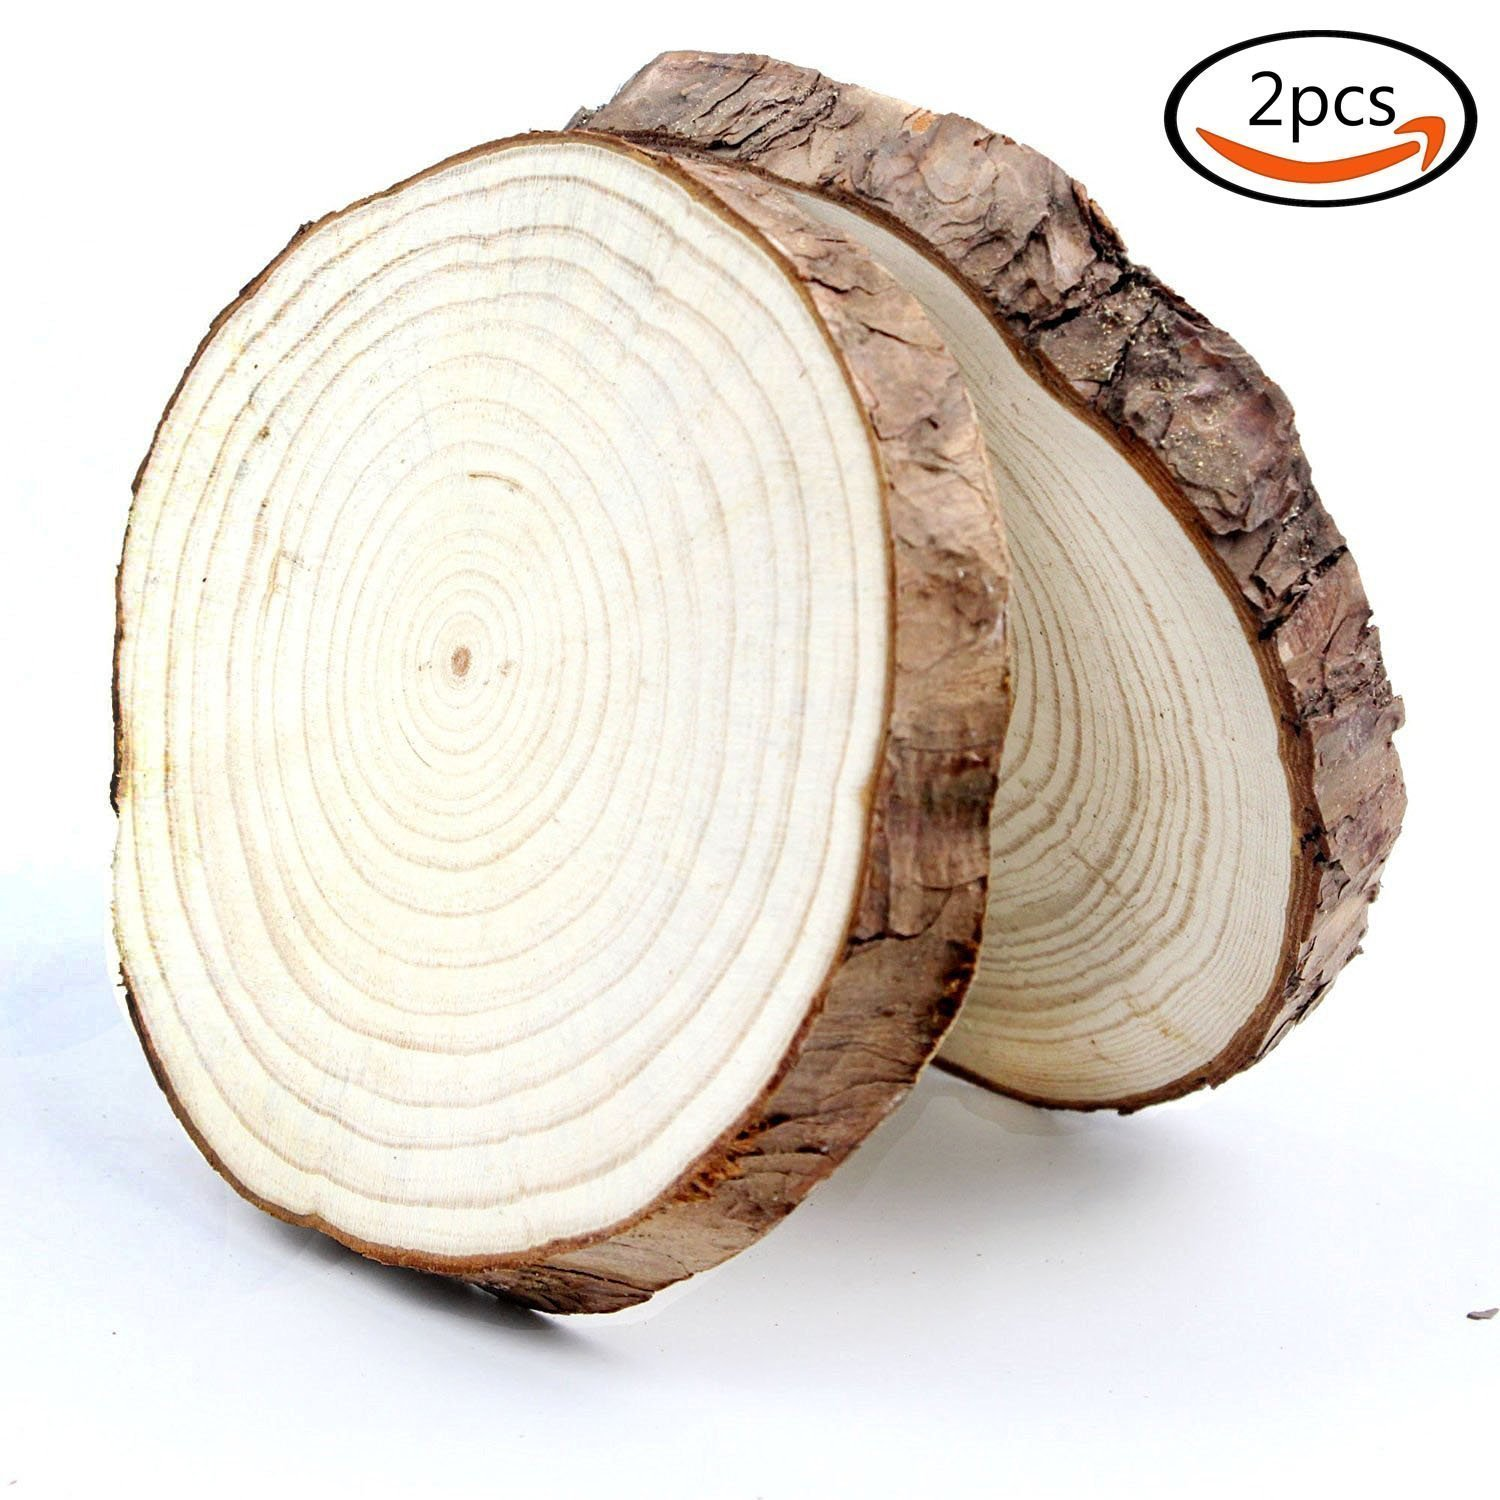 Amazoncom Coco Unpainted Natural Round Blank Wood Slices With Tree